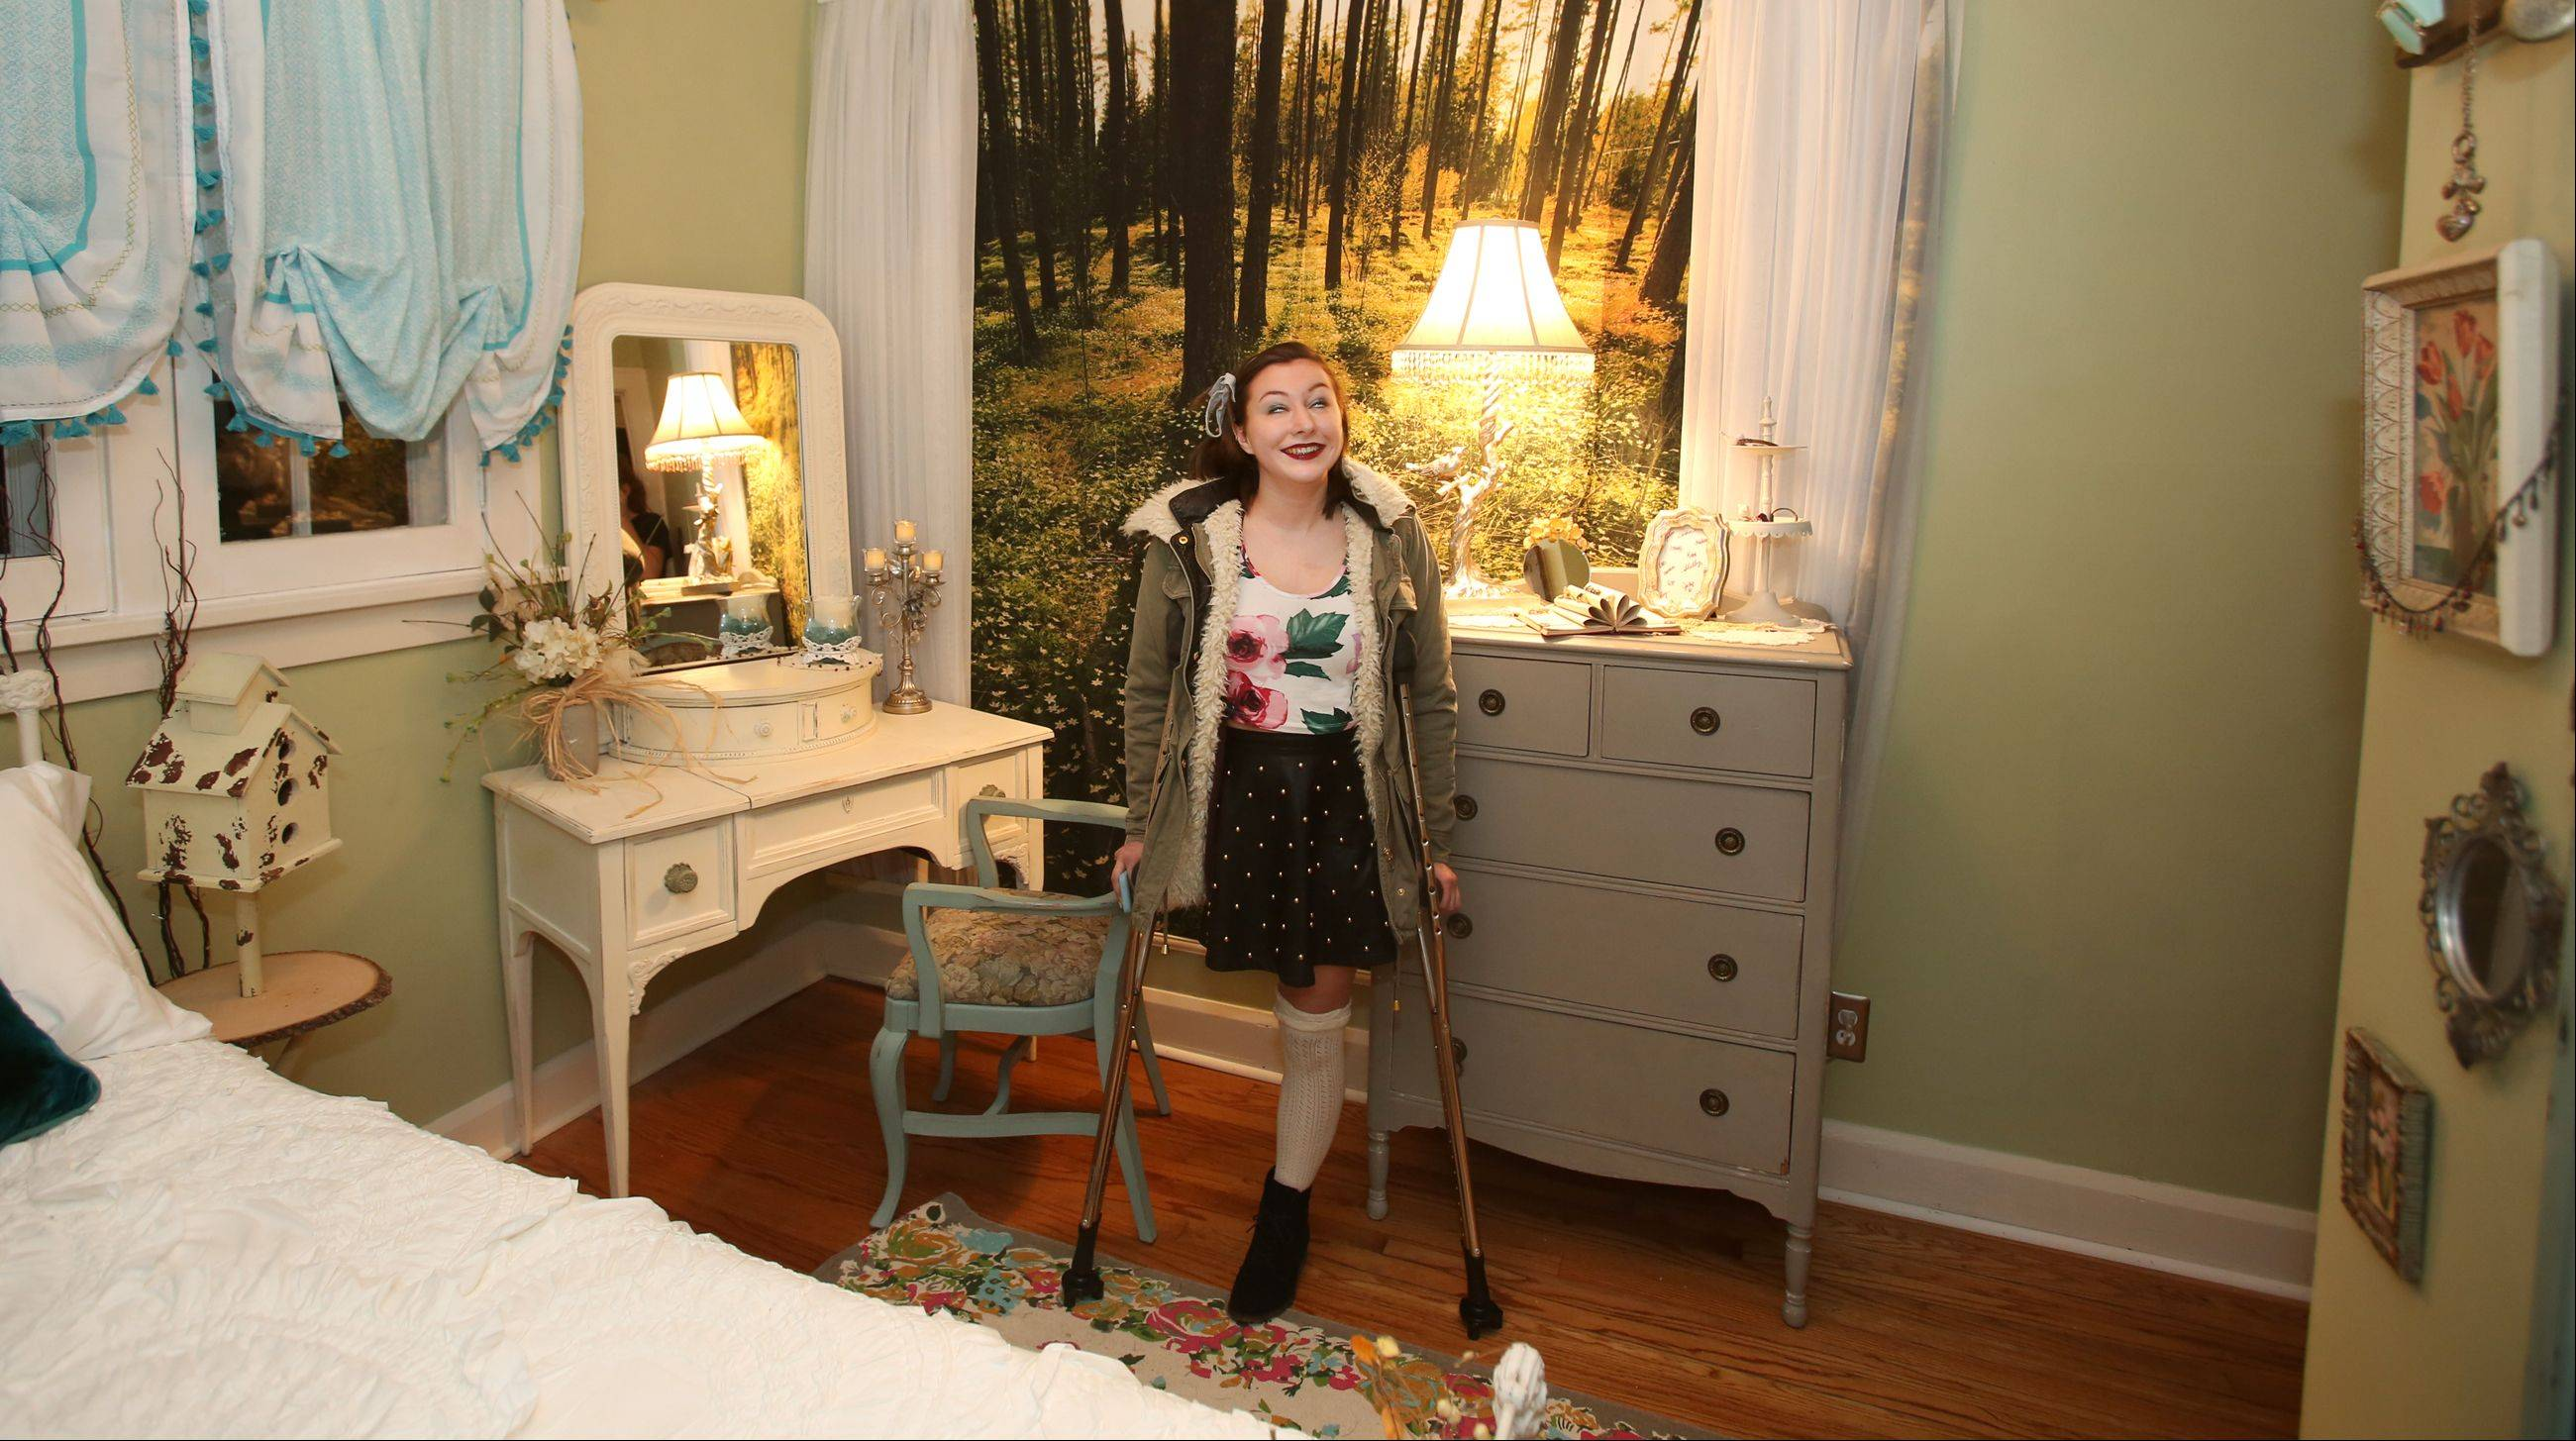 Genevieve Cipriano, 18, of Glen Ellyn looks over her bedroom, designed by Special Spaces Chicagoland, a Naperville nonprofit organization that creates dream bedrooms for children with life threatening medical conditions.